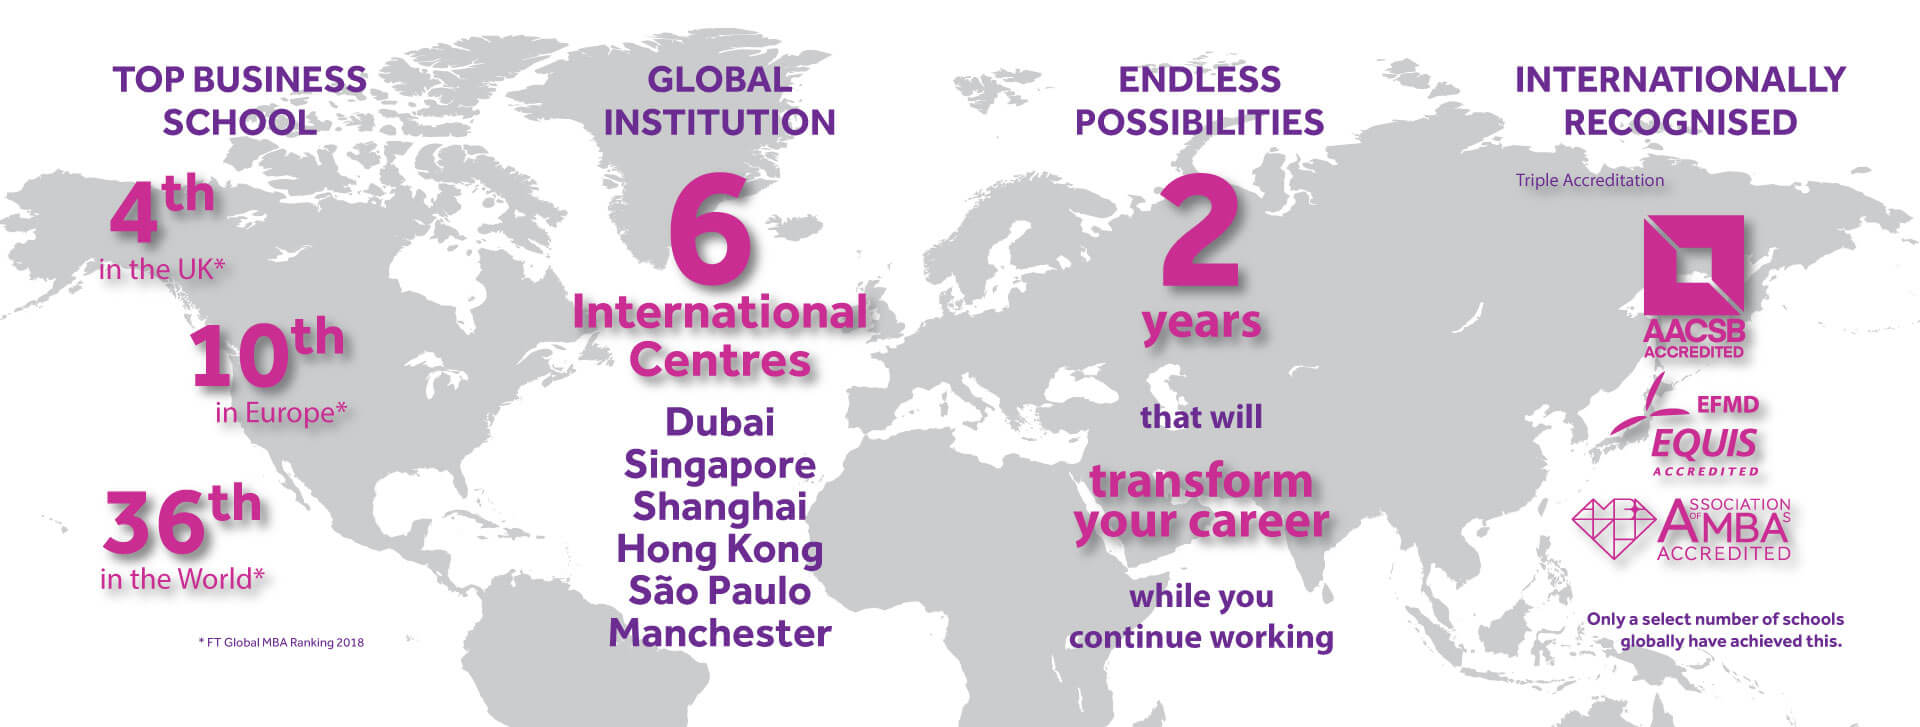 Why The Manchester Global MBA programme?